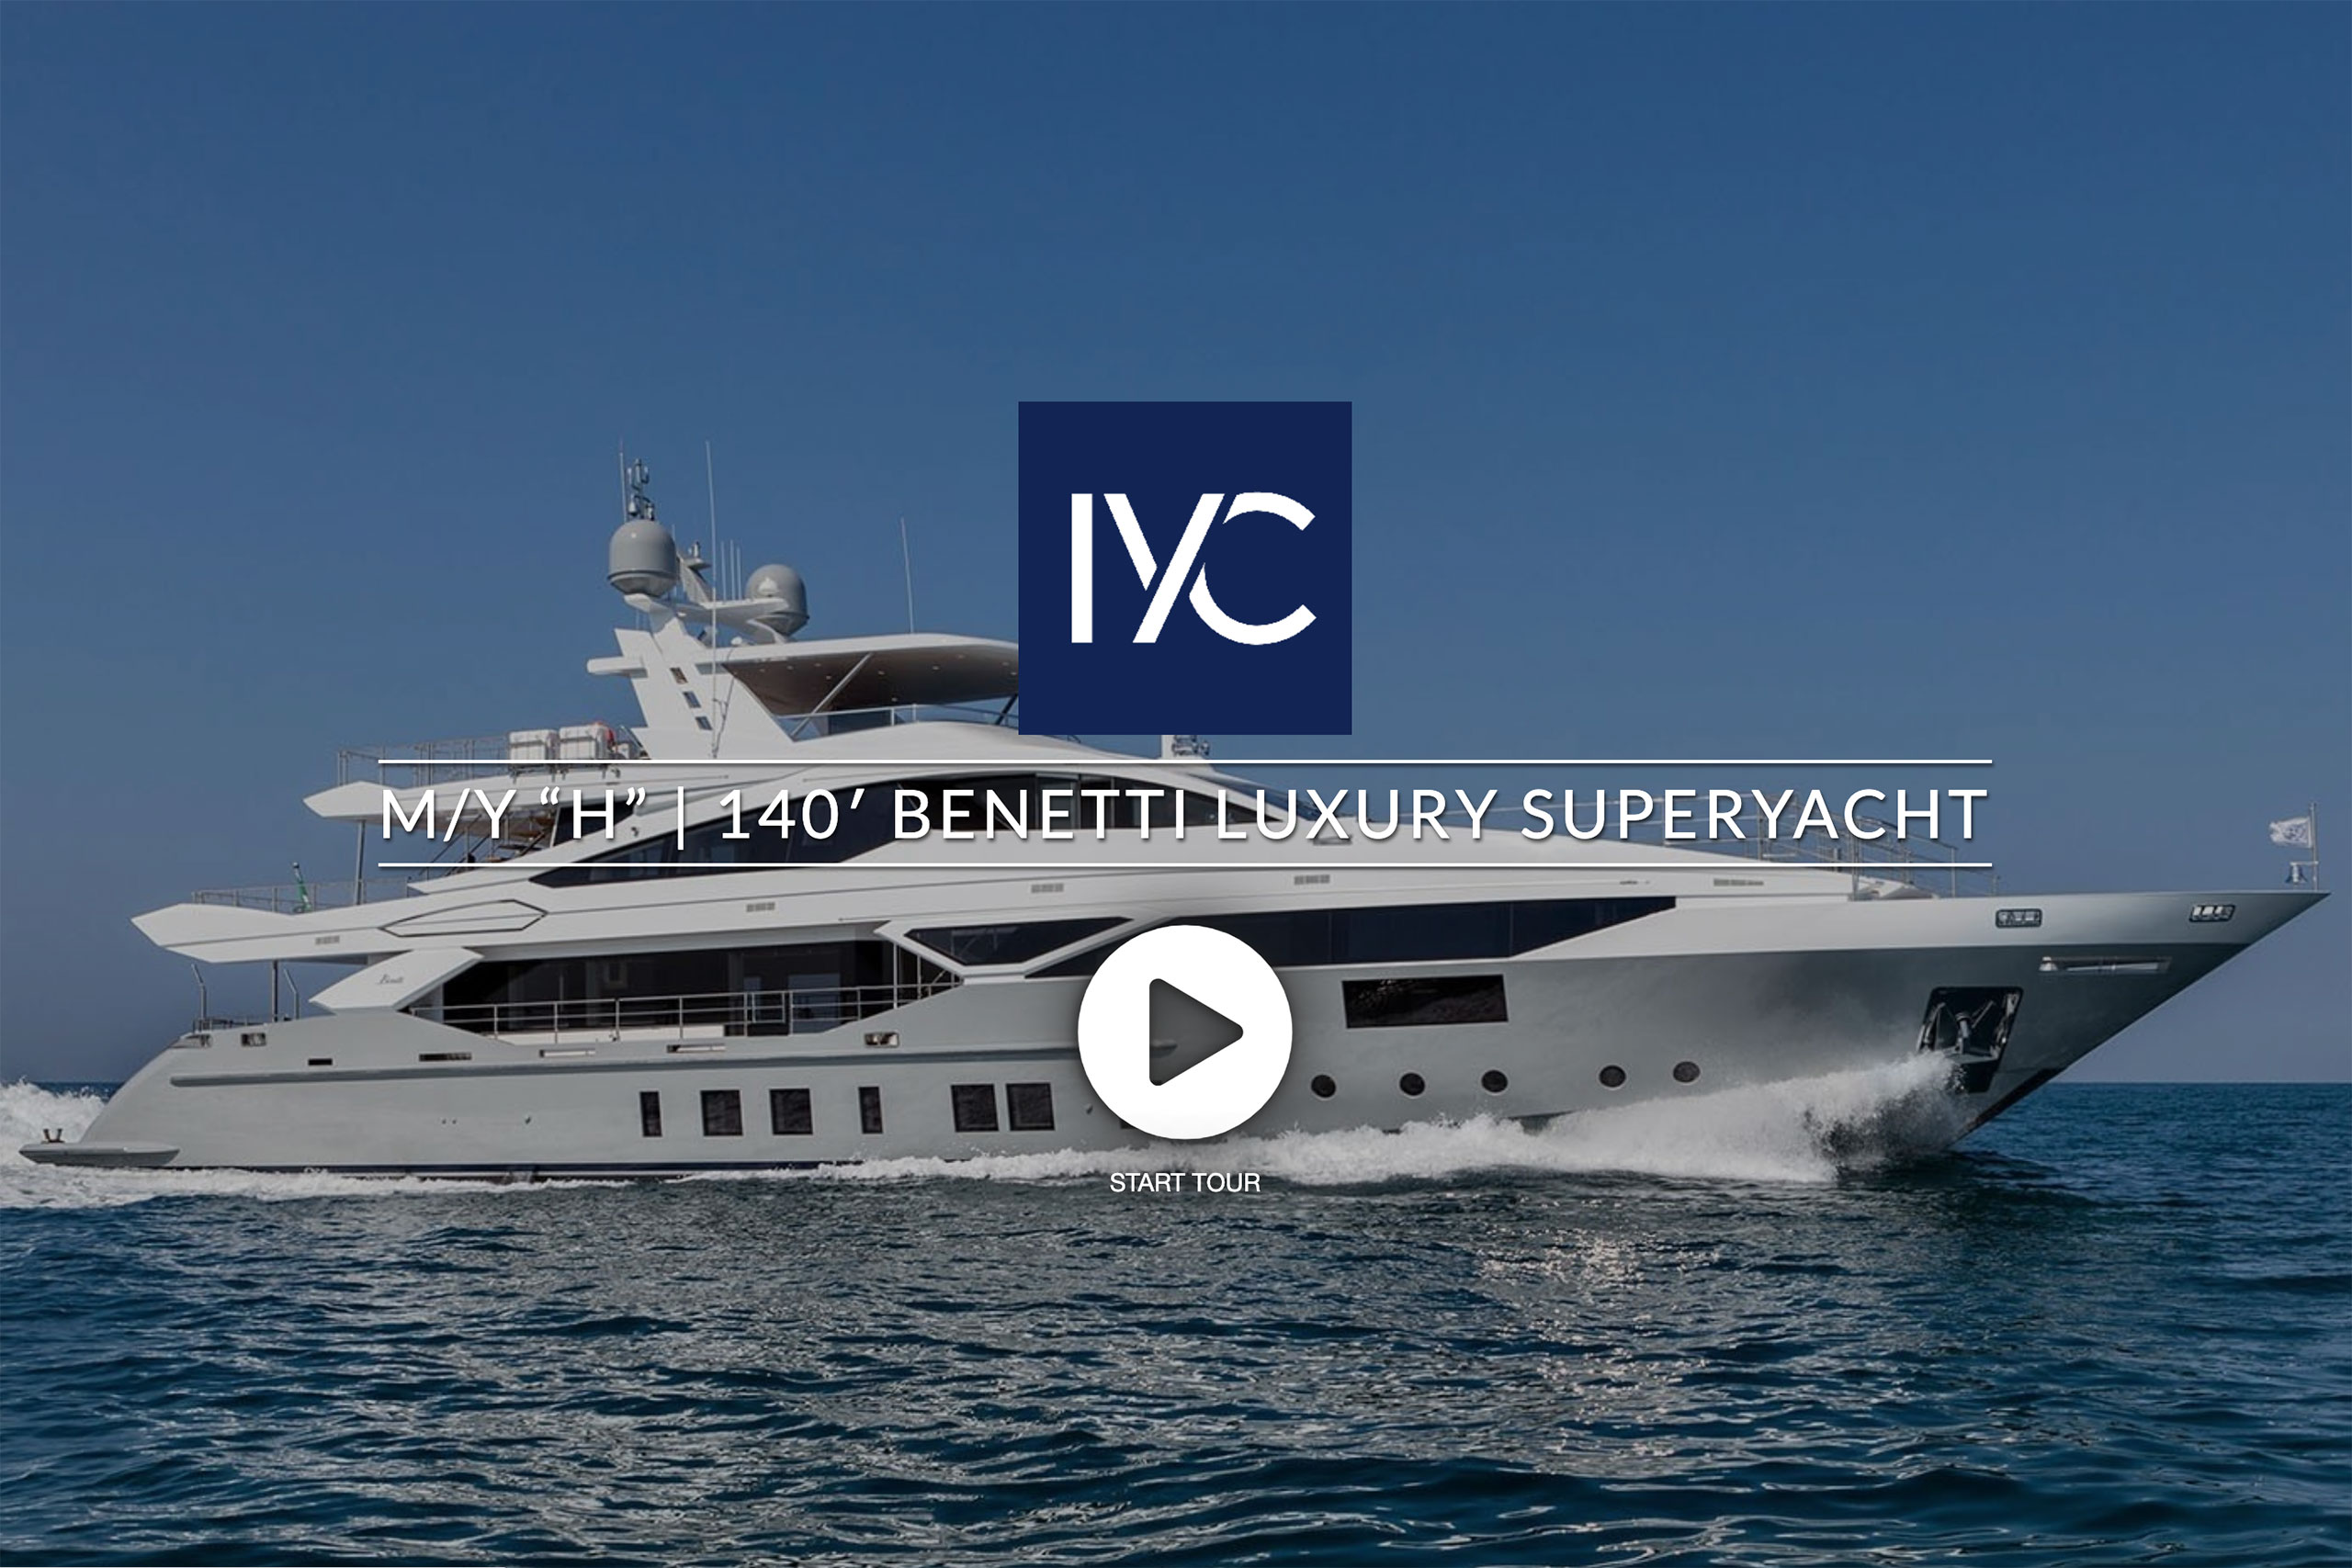 yacht-3d-virtual-tours